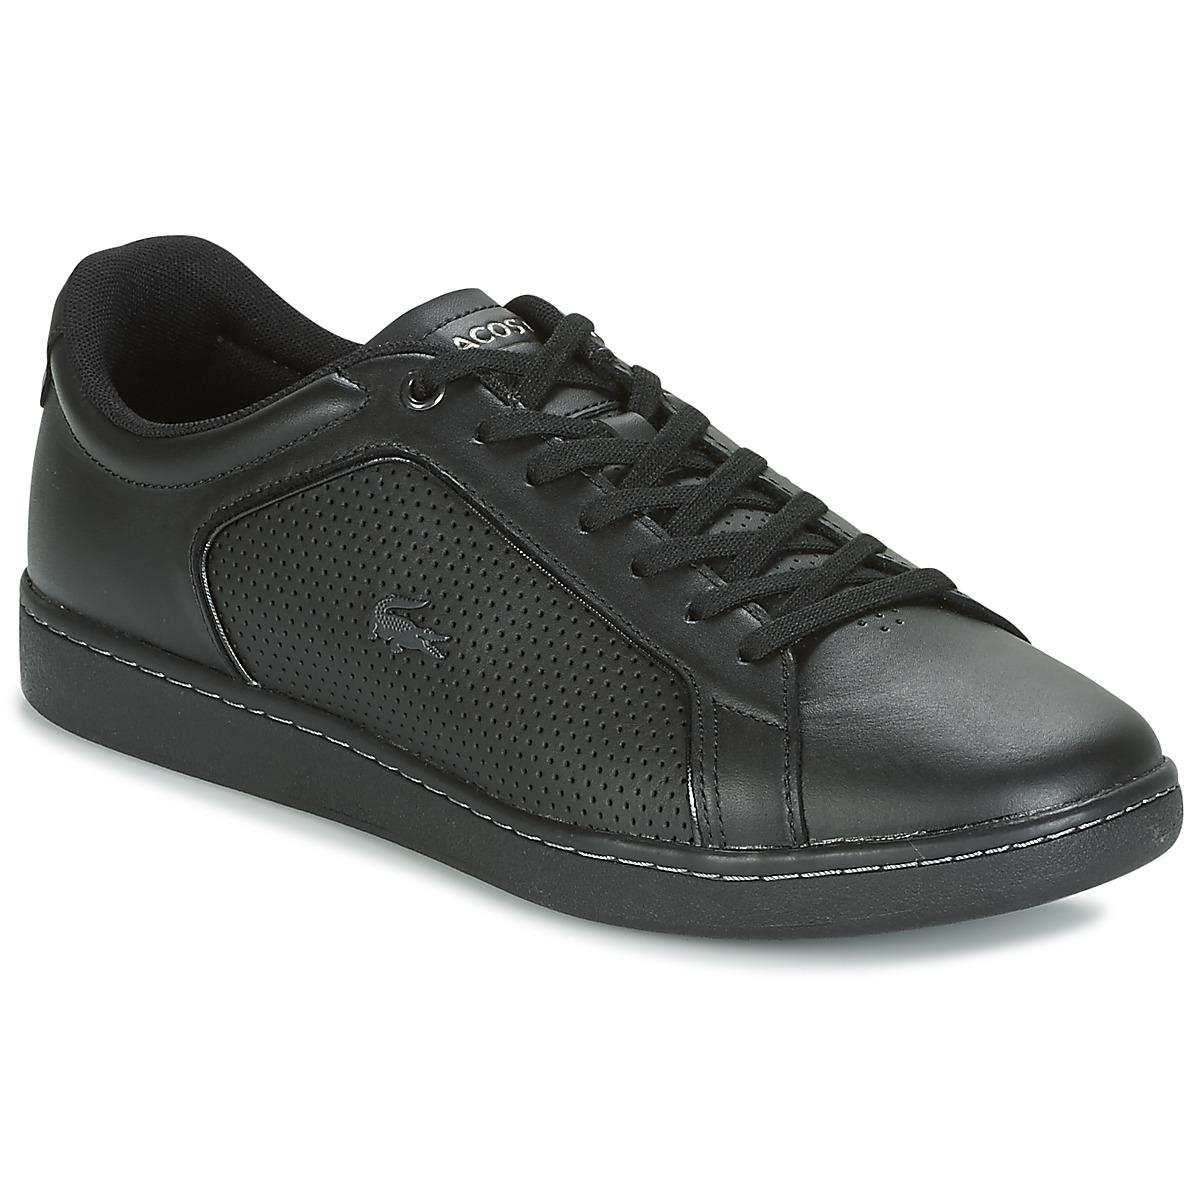 b958888b275eff Lacoste Carnaby Evo 317 10 Spm Shoes (trainers) in Black for Men - Lyst